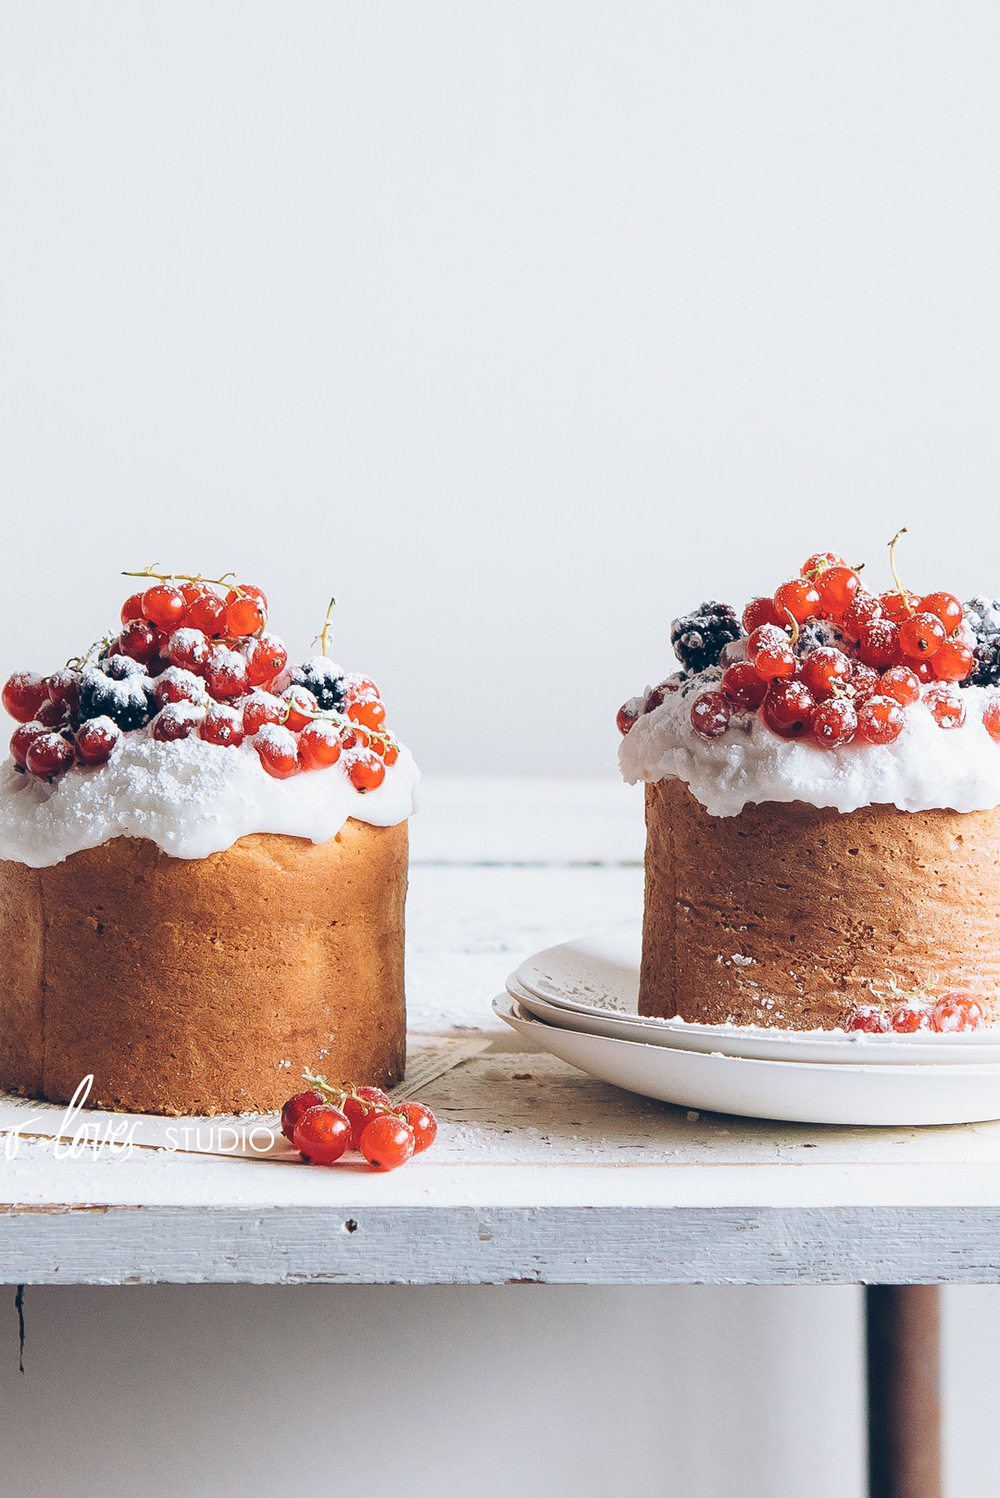 Rachel Korinek | Food Photographer